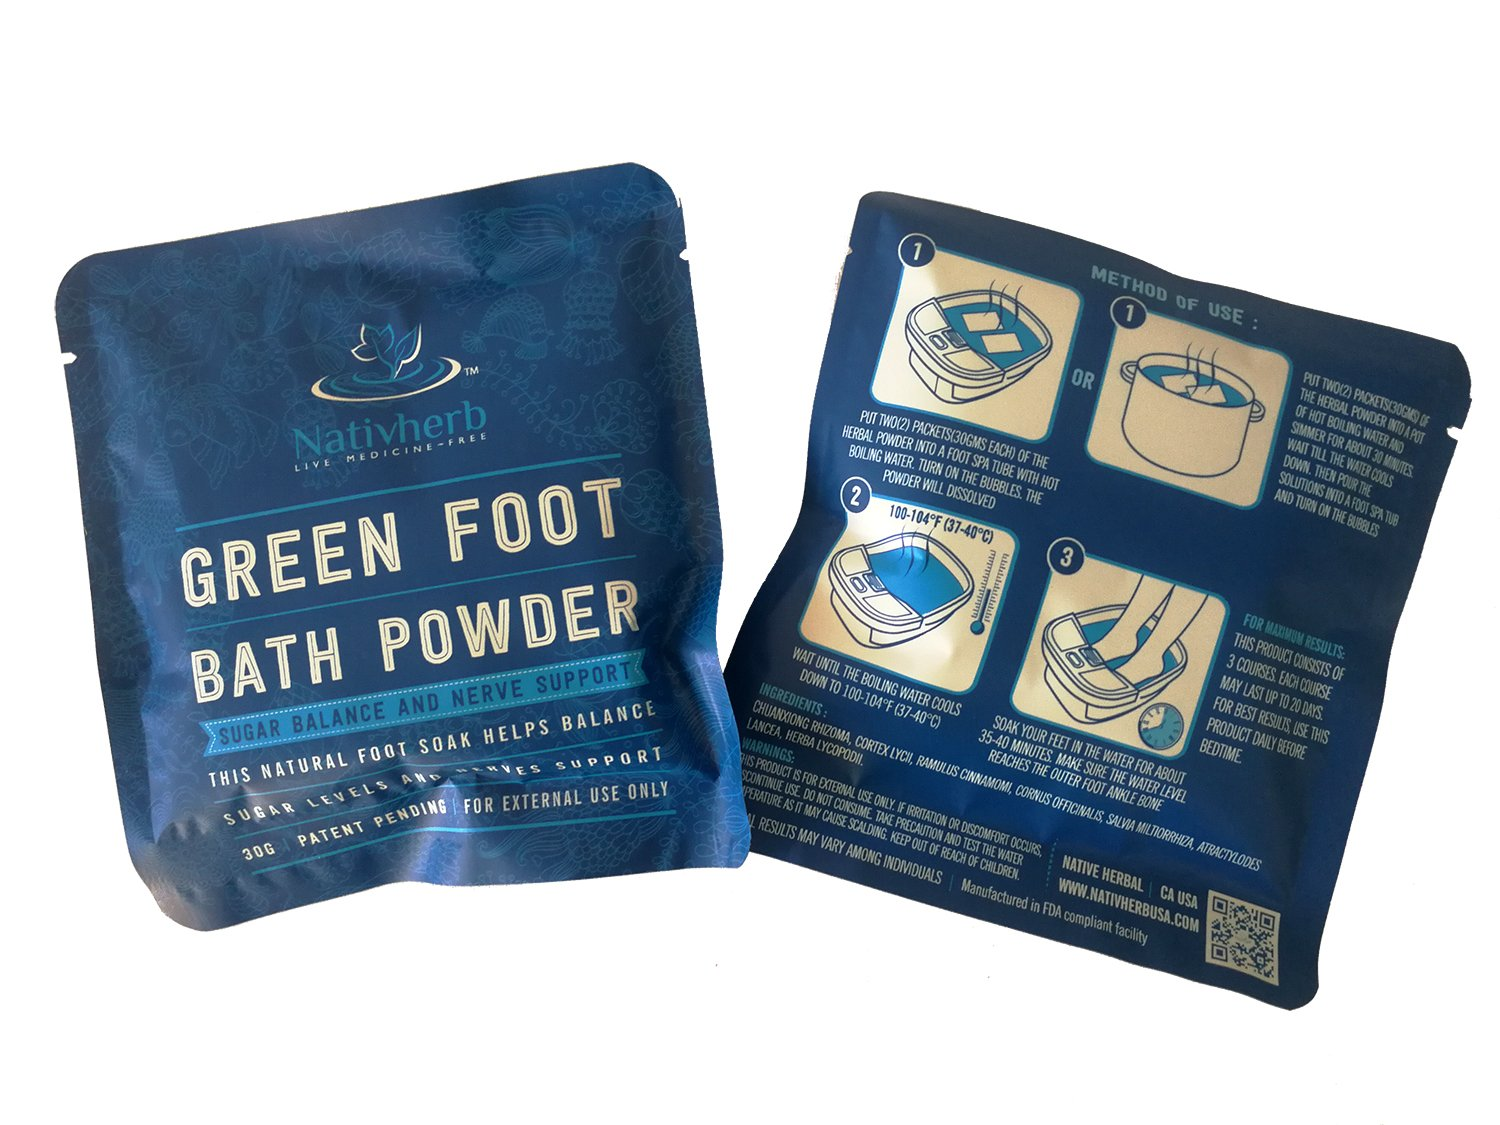 Green Foot bath powder for Sugar Balance and Nerve Support, Healthy Life Style,Natural Raw Herb Super Food Supplement … (1) by Native Herbal (Image #1)